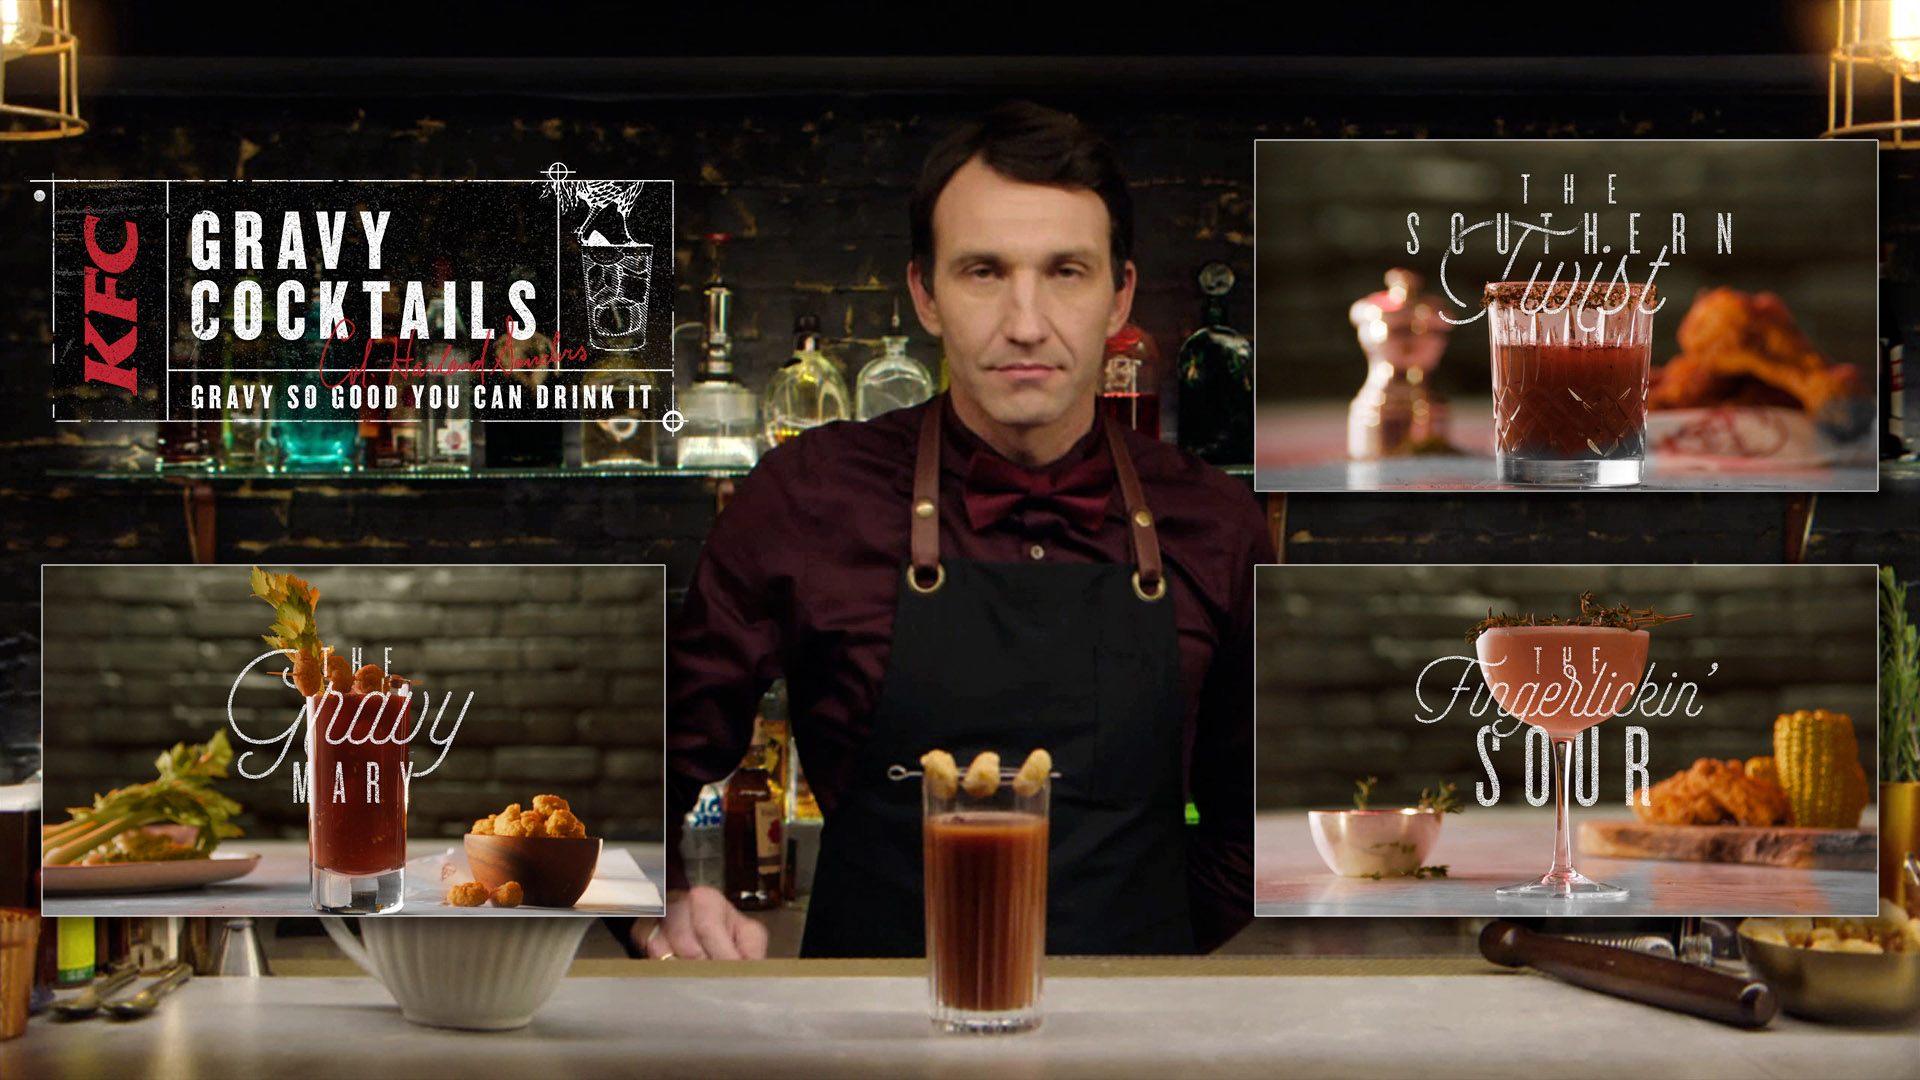 KFC - Gravy Cocktails